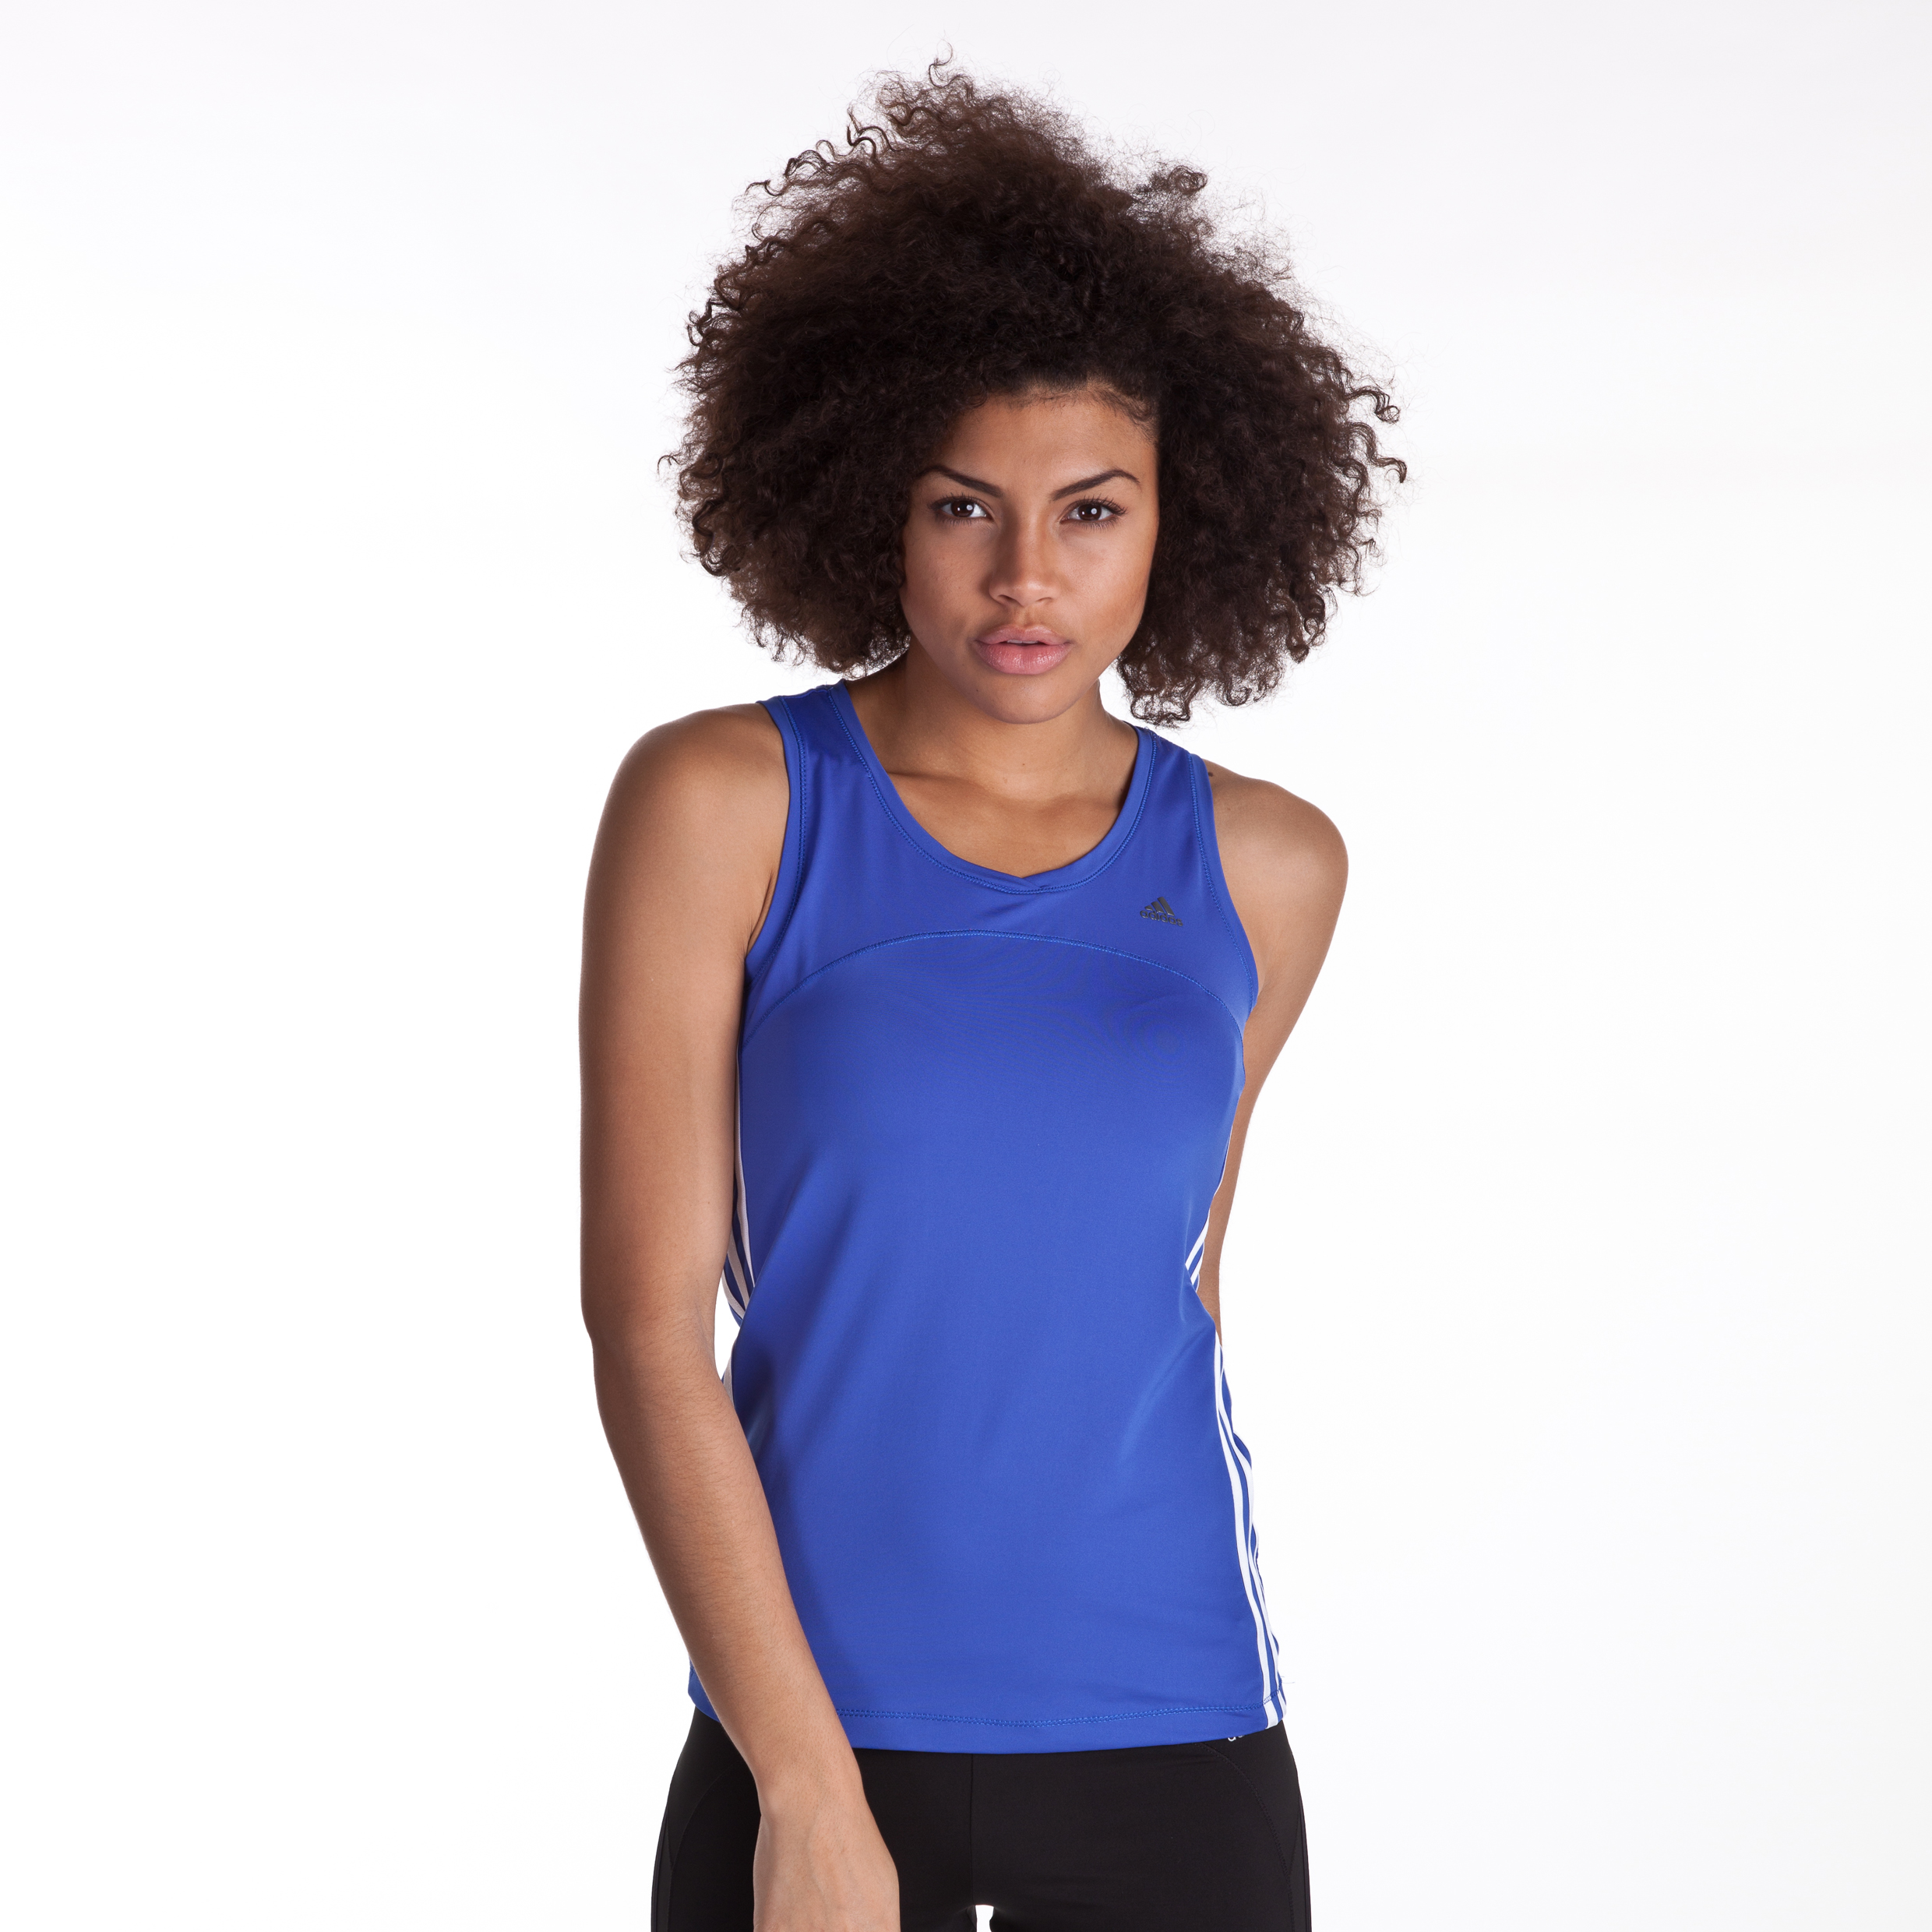 Adidas CLIMACOOL Training Core Tank - Lab Blue/White - Womens